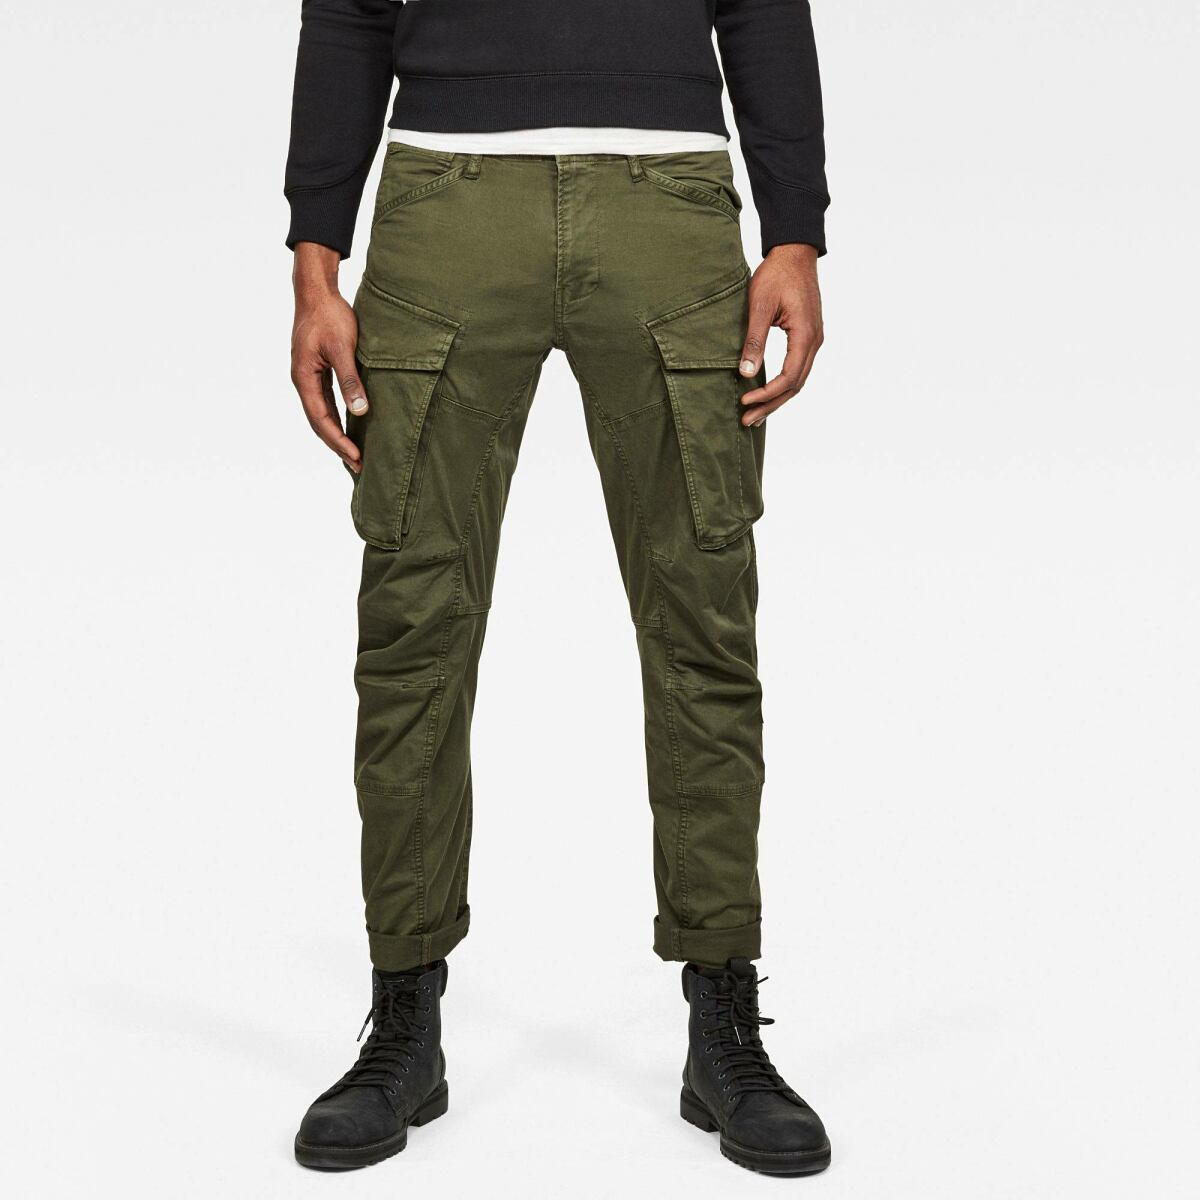 Green Man Pants 3D Cargo Straight Tapered Pant G-Star MEN